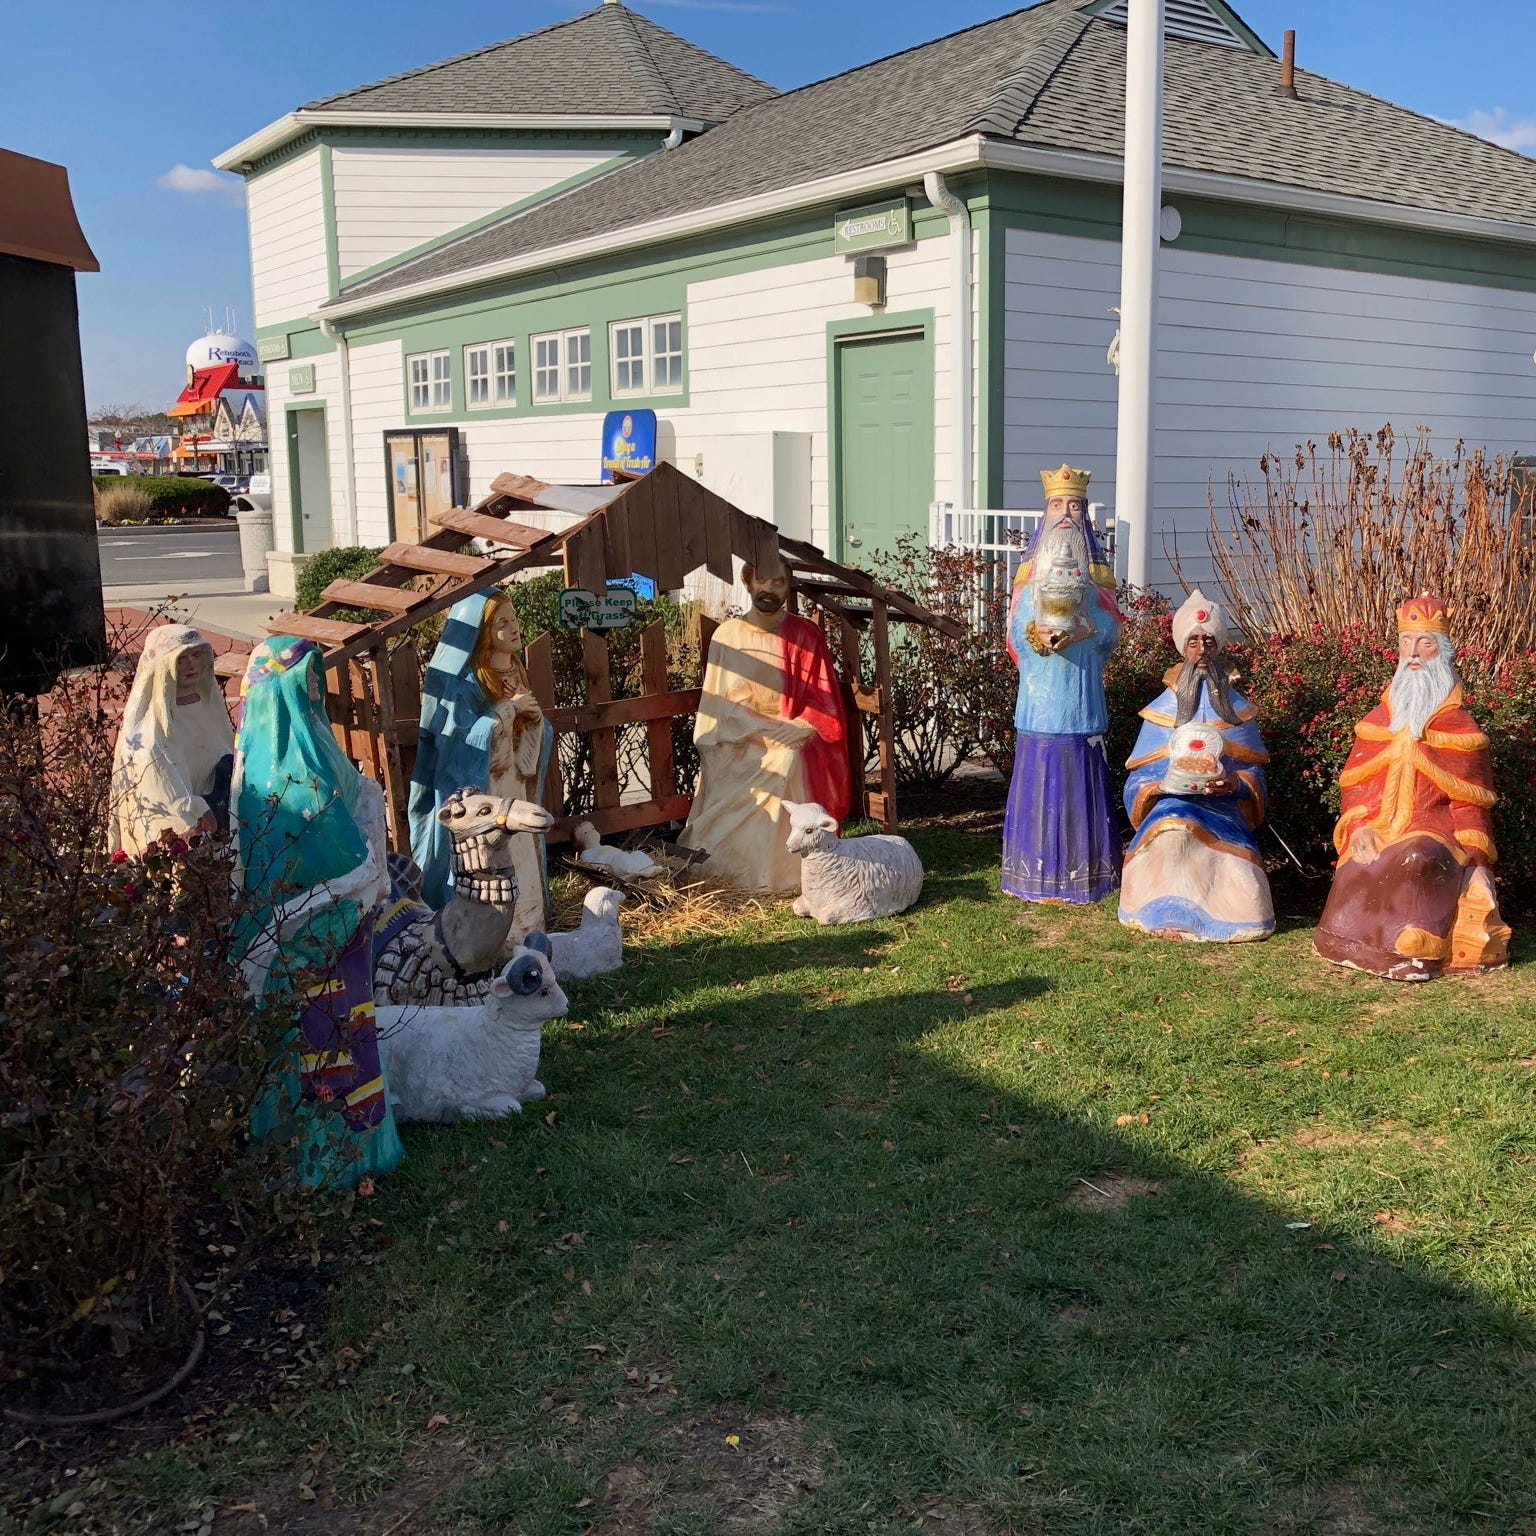 Rehoboth Beach officials and a local Catholic church disagree on whether to display a nativity scene on public property near the Bandstand.